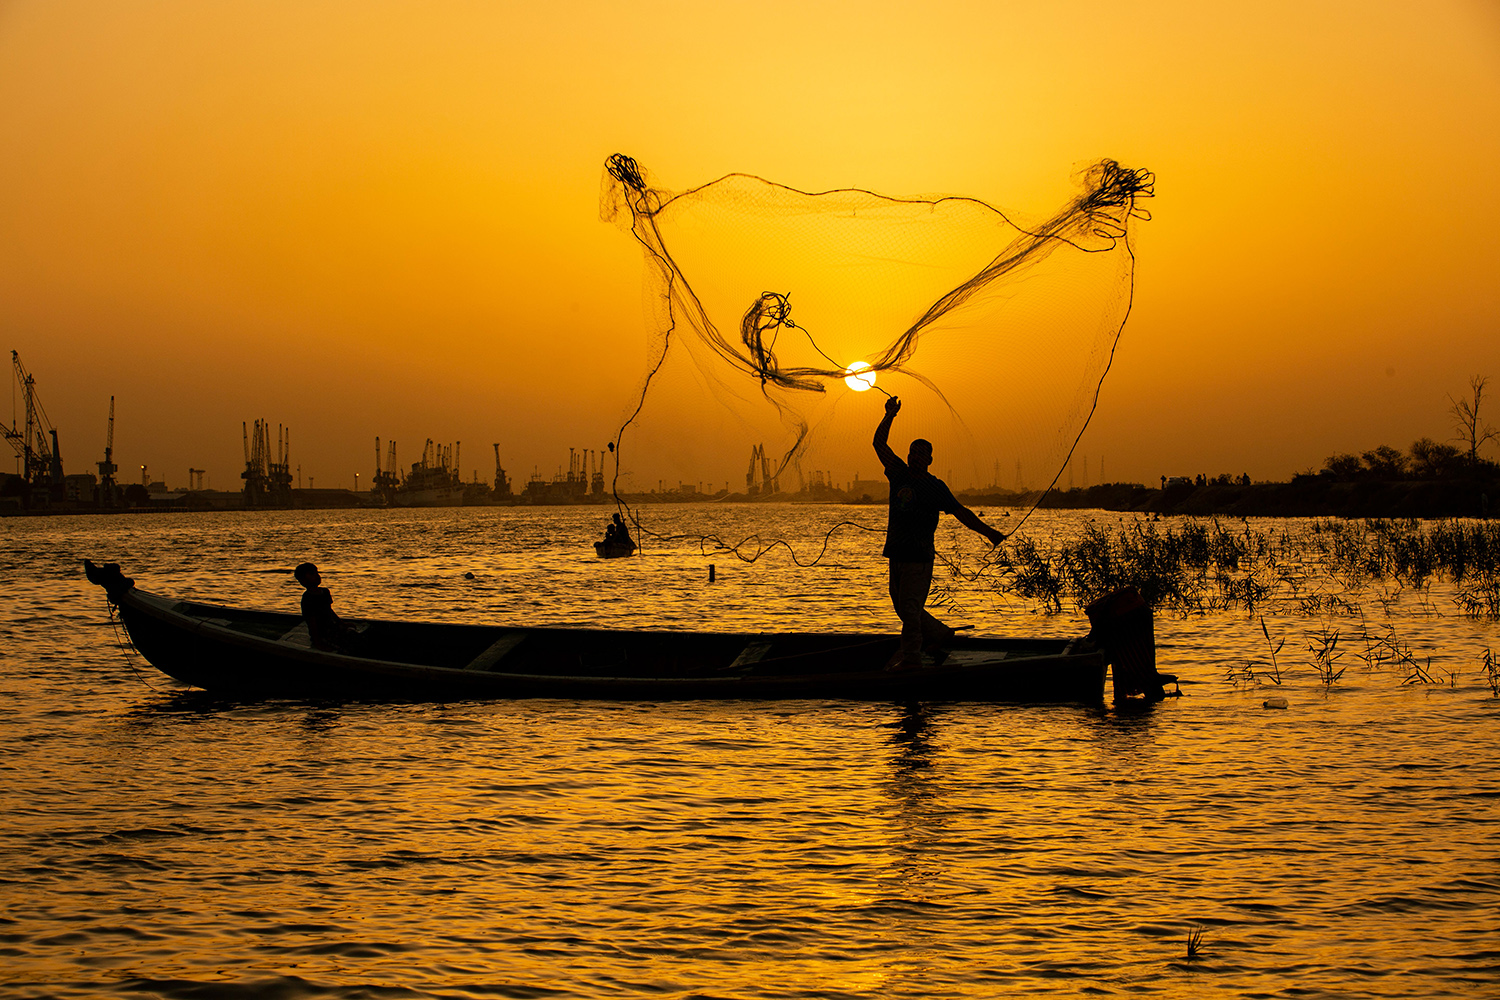 A fisherman casts his net at sunset in the Shatt Al-Arab River in the southern Iraqi city of Basra on June 12. HUSSEIN FALEH/AFP via Getty Images